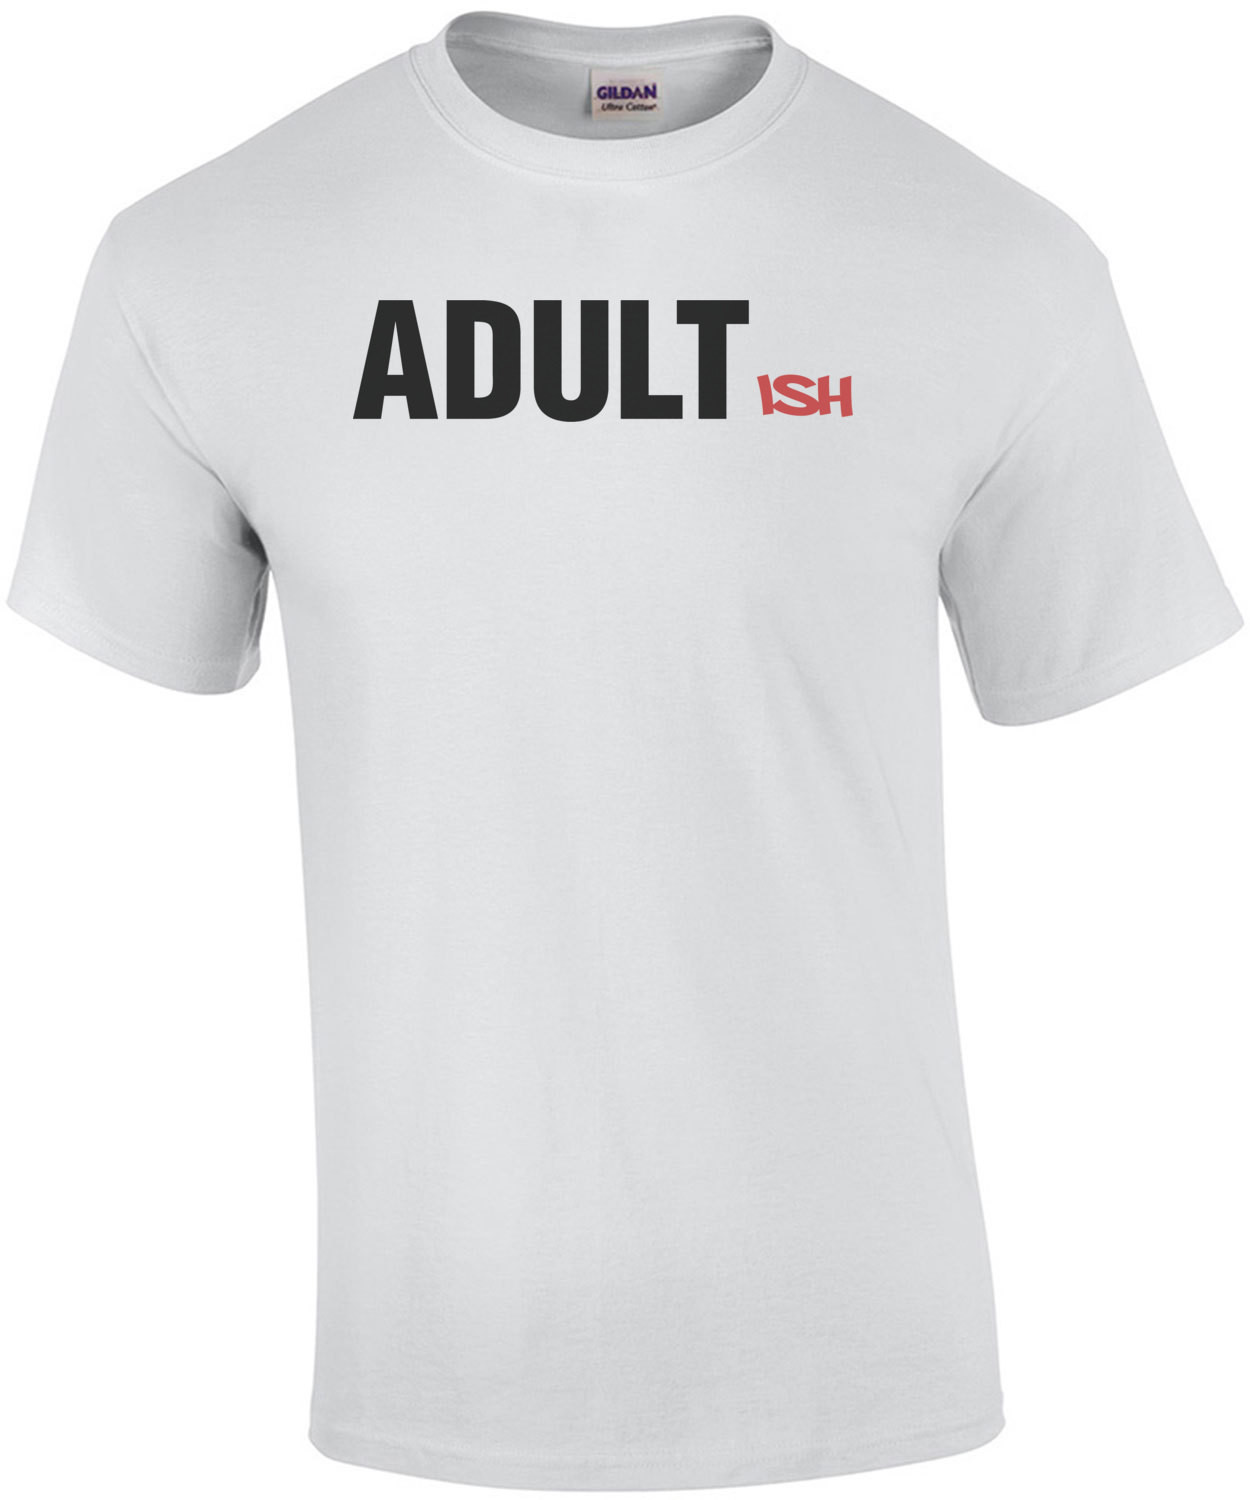 Adultish Funny T-Shirt